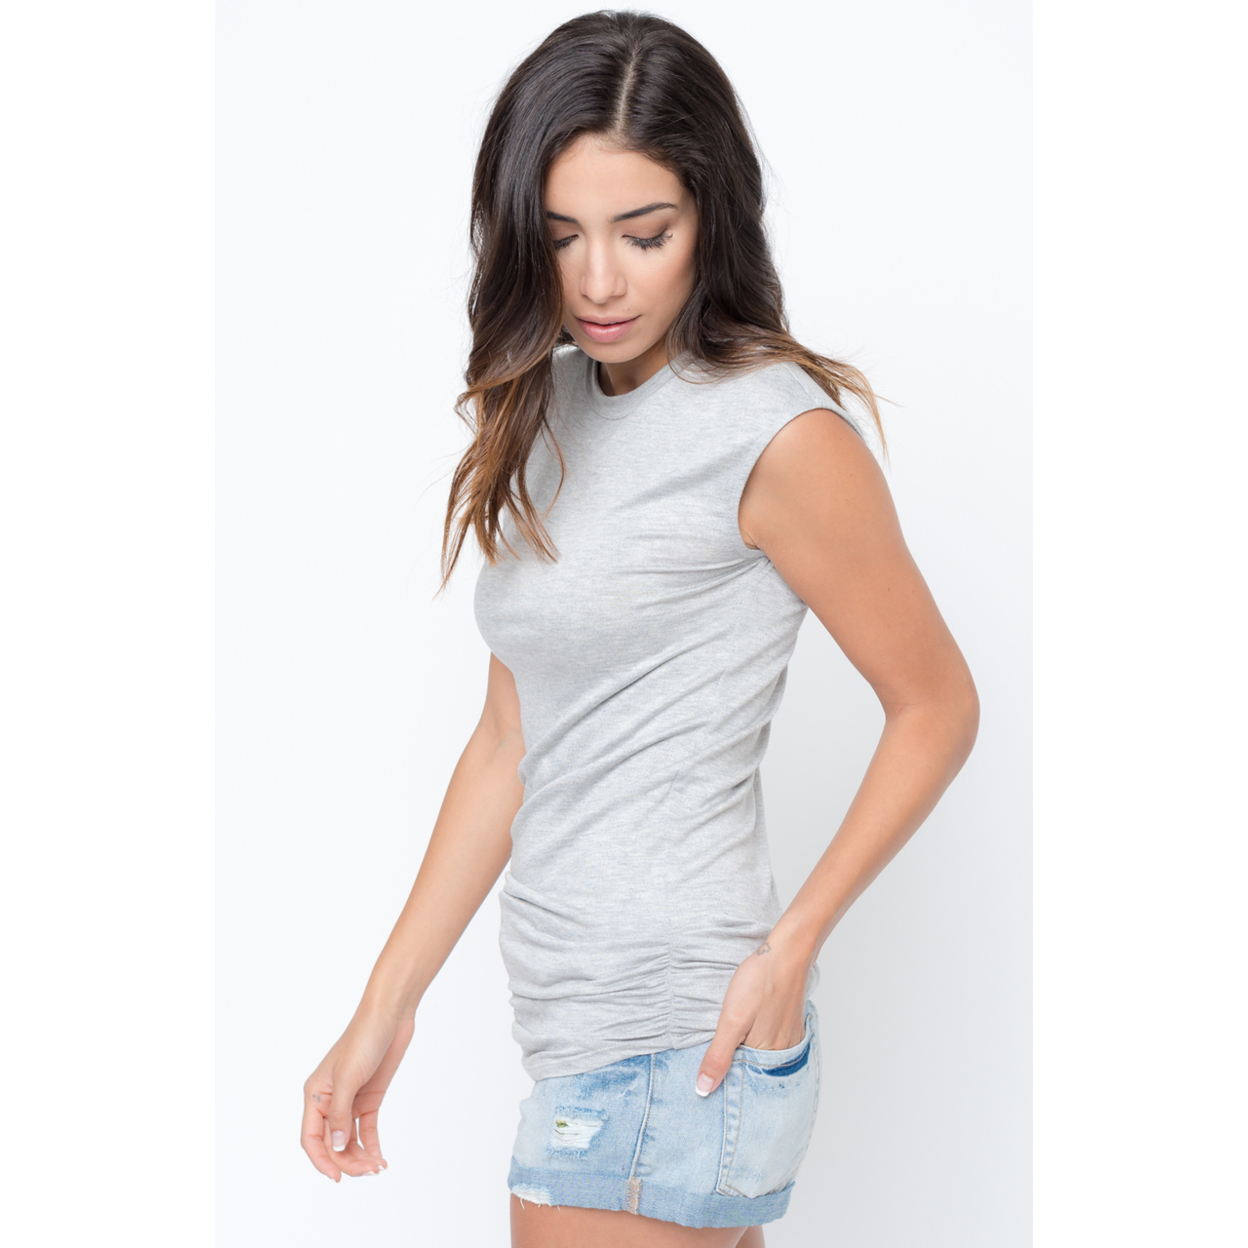 Sleeveless Side Ruched Tank - L, Heather Grey 59e7e997c98fc473cf5a7f6a